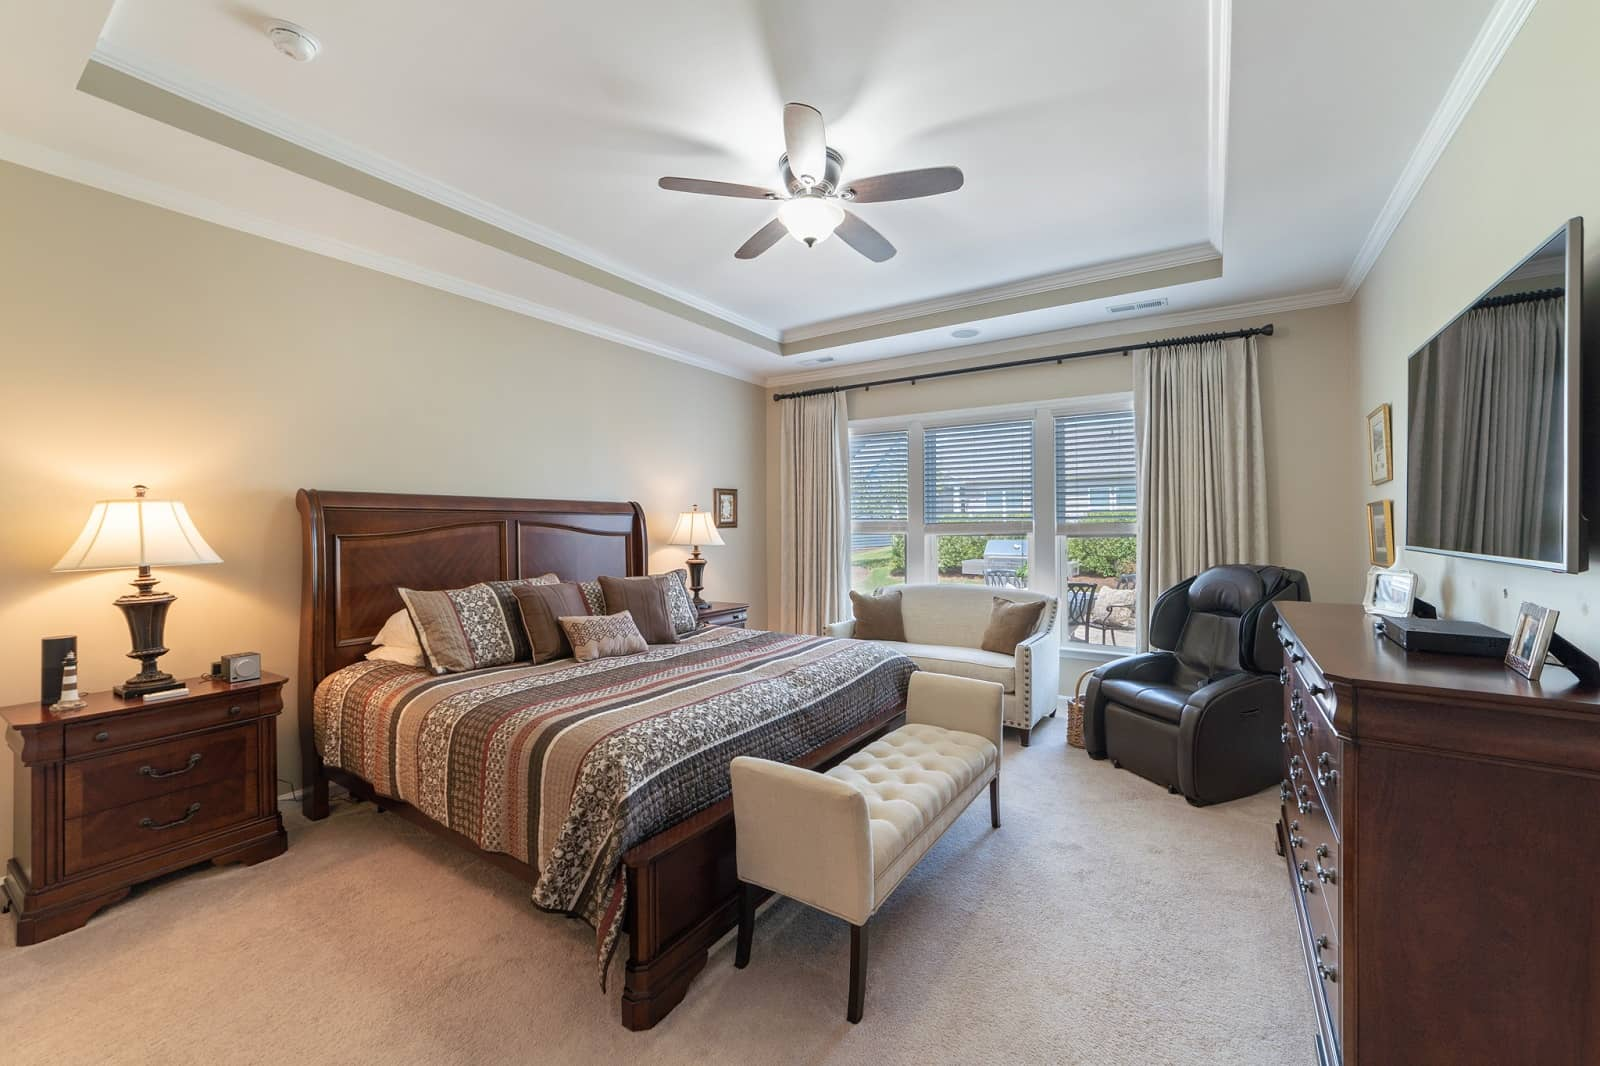 Real Estate Photography in Durham - NC - USA - Bedroom View